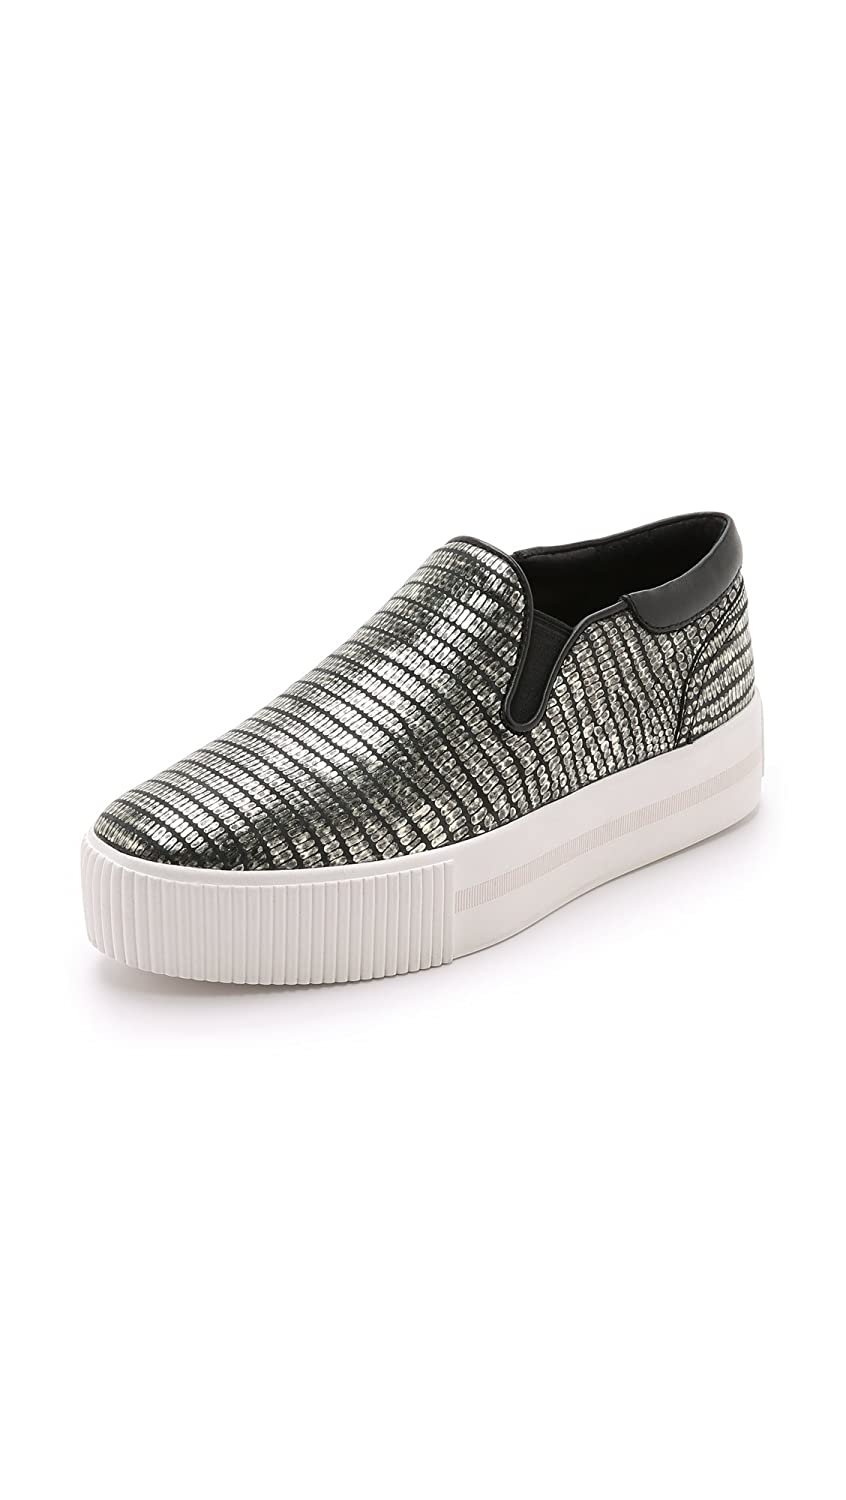 7a7c89b3f2d10 30%OFF Ash Women's Karma Slip On Sneakers - cohstra.org